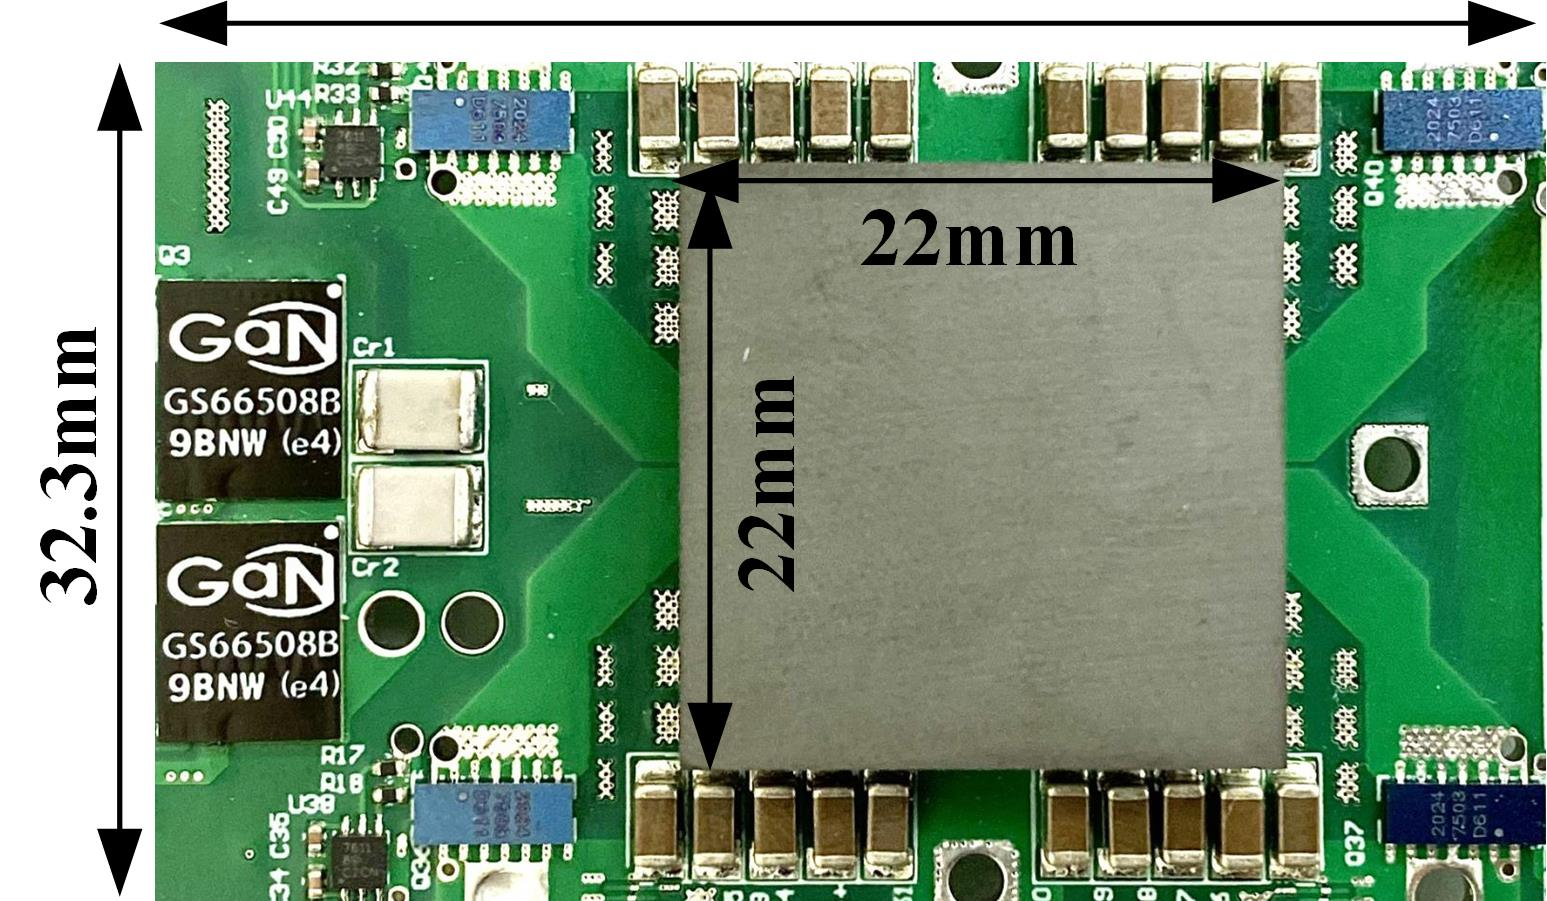 1.5-MHz High-Performance 380-V/12-V LLC Resonant Converters with Quarter-Turn Transformer Optimization